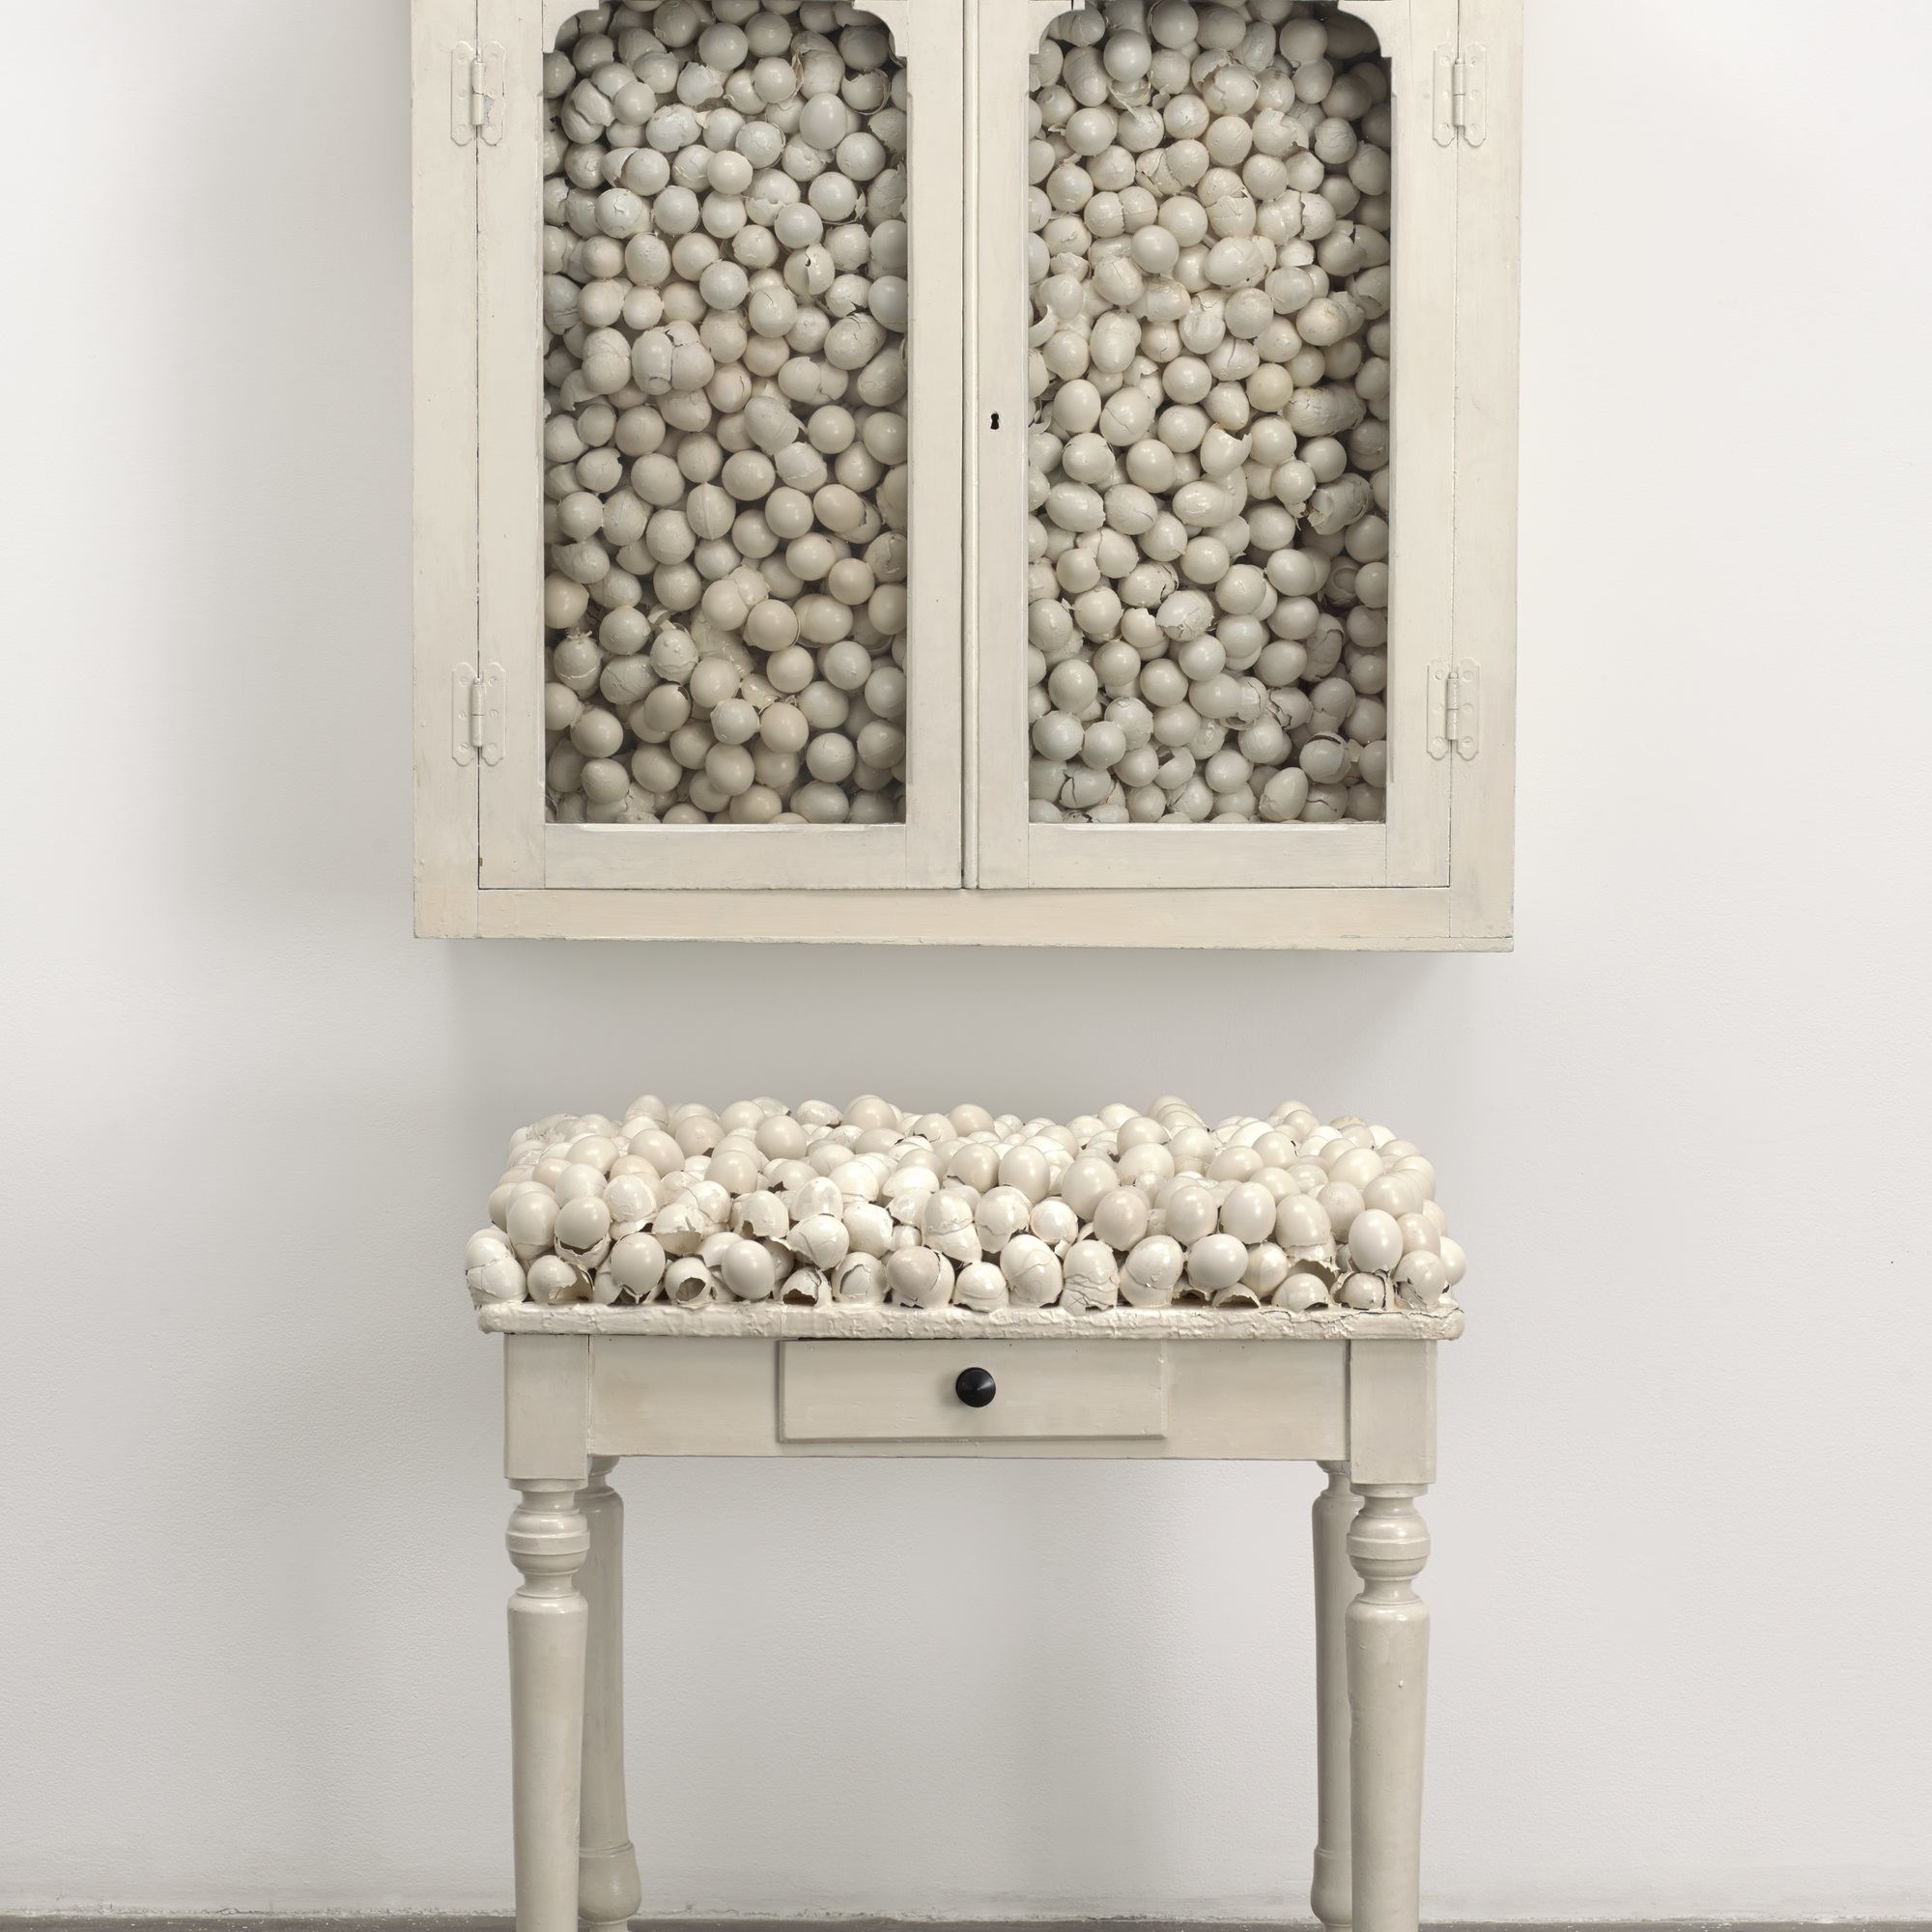 Marcel Broodthaers. Armoire blanche et table blanche (White Cabinet and White Table). 1965. Painted cabinet, table, and eggshells; cabinet 33 7/8 x 32 1/4 x 24 1/2″ (86 x 82 x 62 cm), table 41 x 39 3/8 x 15 3/4″ (104 x 100 x 40 cm). The Museum of Modern Art, New York. Fractional and promised gift of Jo Carole and Ronald S. Lauder. © 2015 Estate of Marcel Broodthaers/Artists Rights Society (ARS), New York/SABAM, Brussels